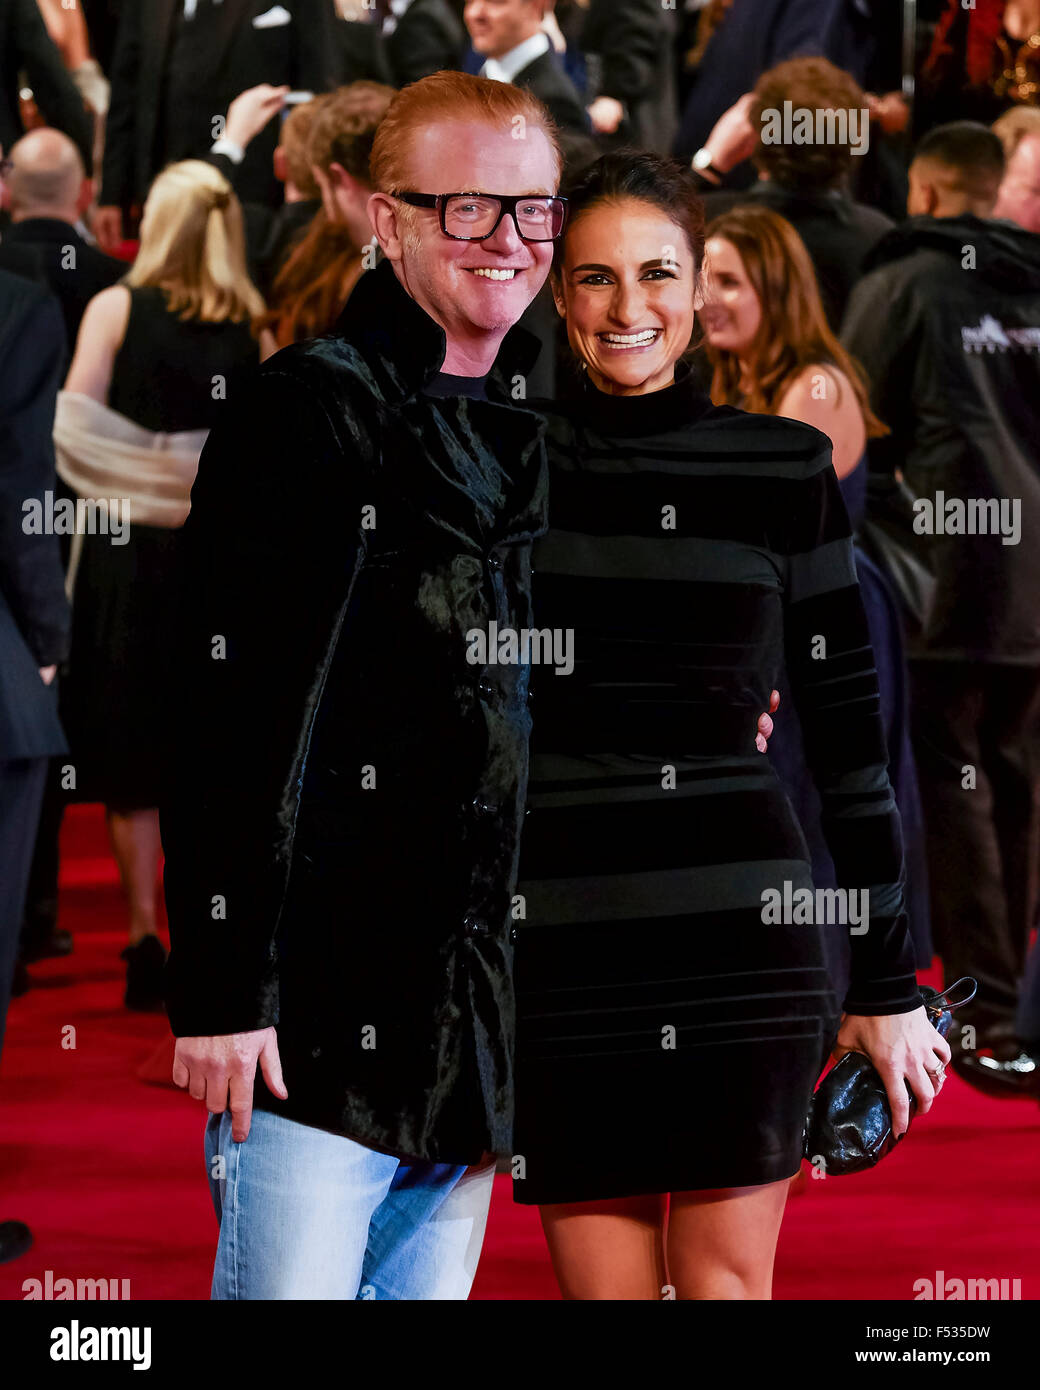 London, UK. 26th Oct, 2015. Chris Evans and Natasha Shishmanian on the red carpet for the The CBTF Royal Film Performance - Stock Image